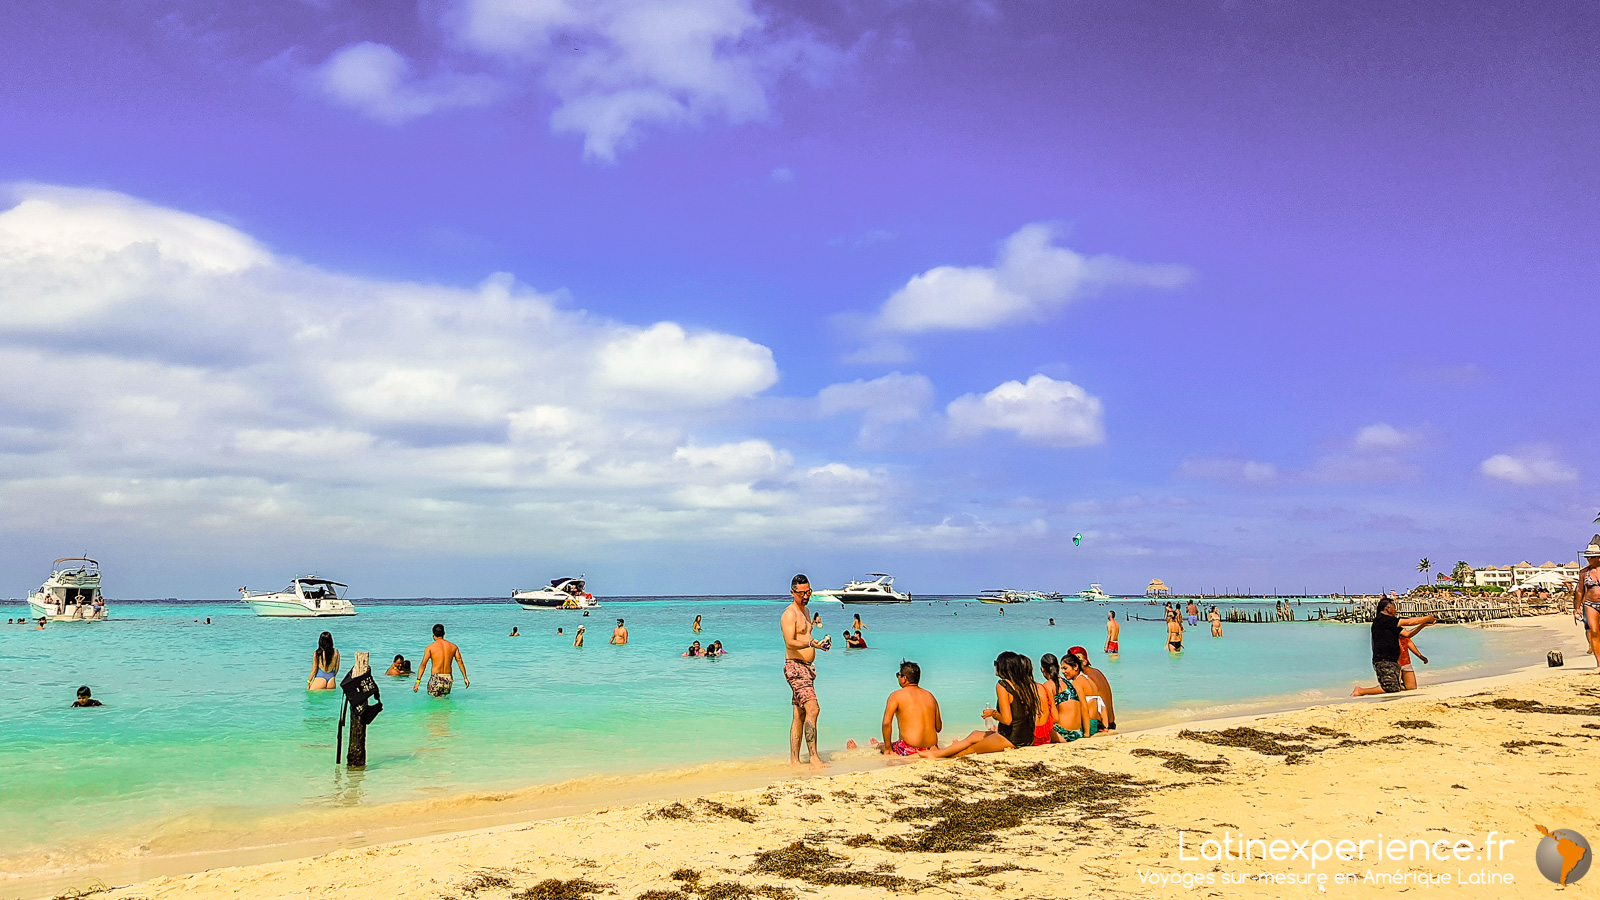 Mexique - Isla Mujeres - Latinexperience voyages